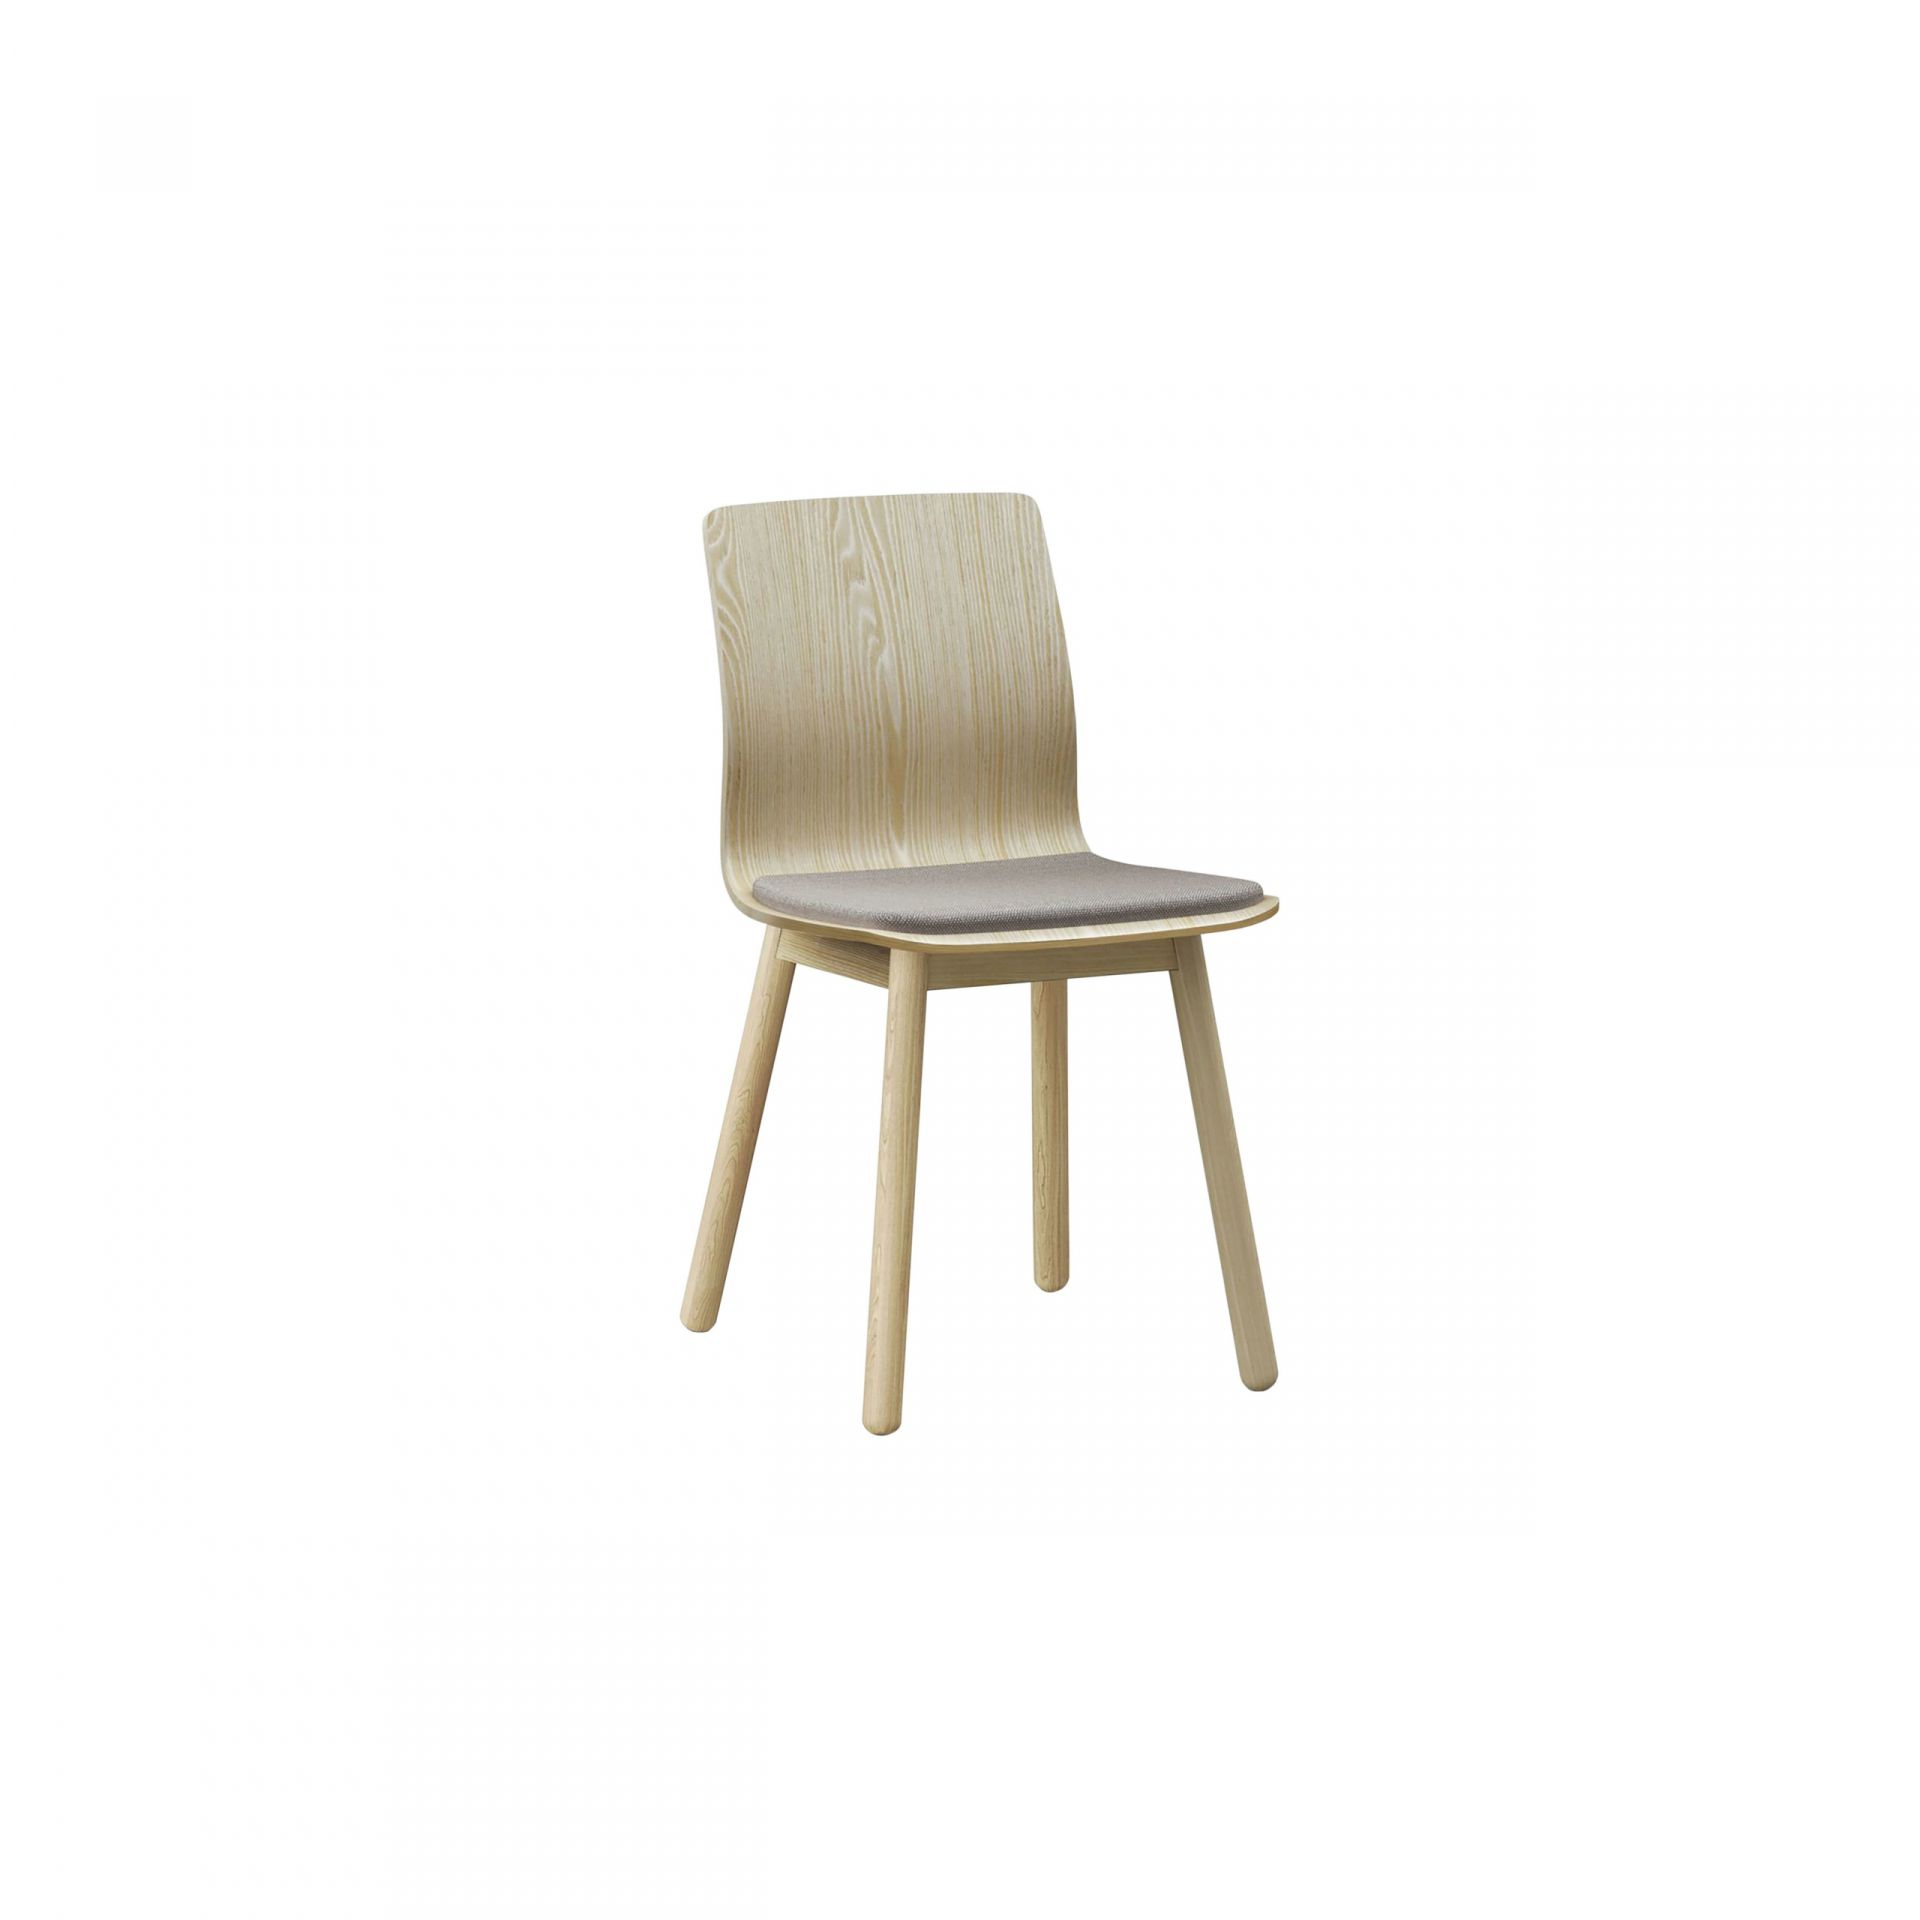 Nova Chair with wooden legs